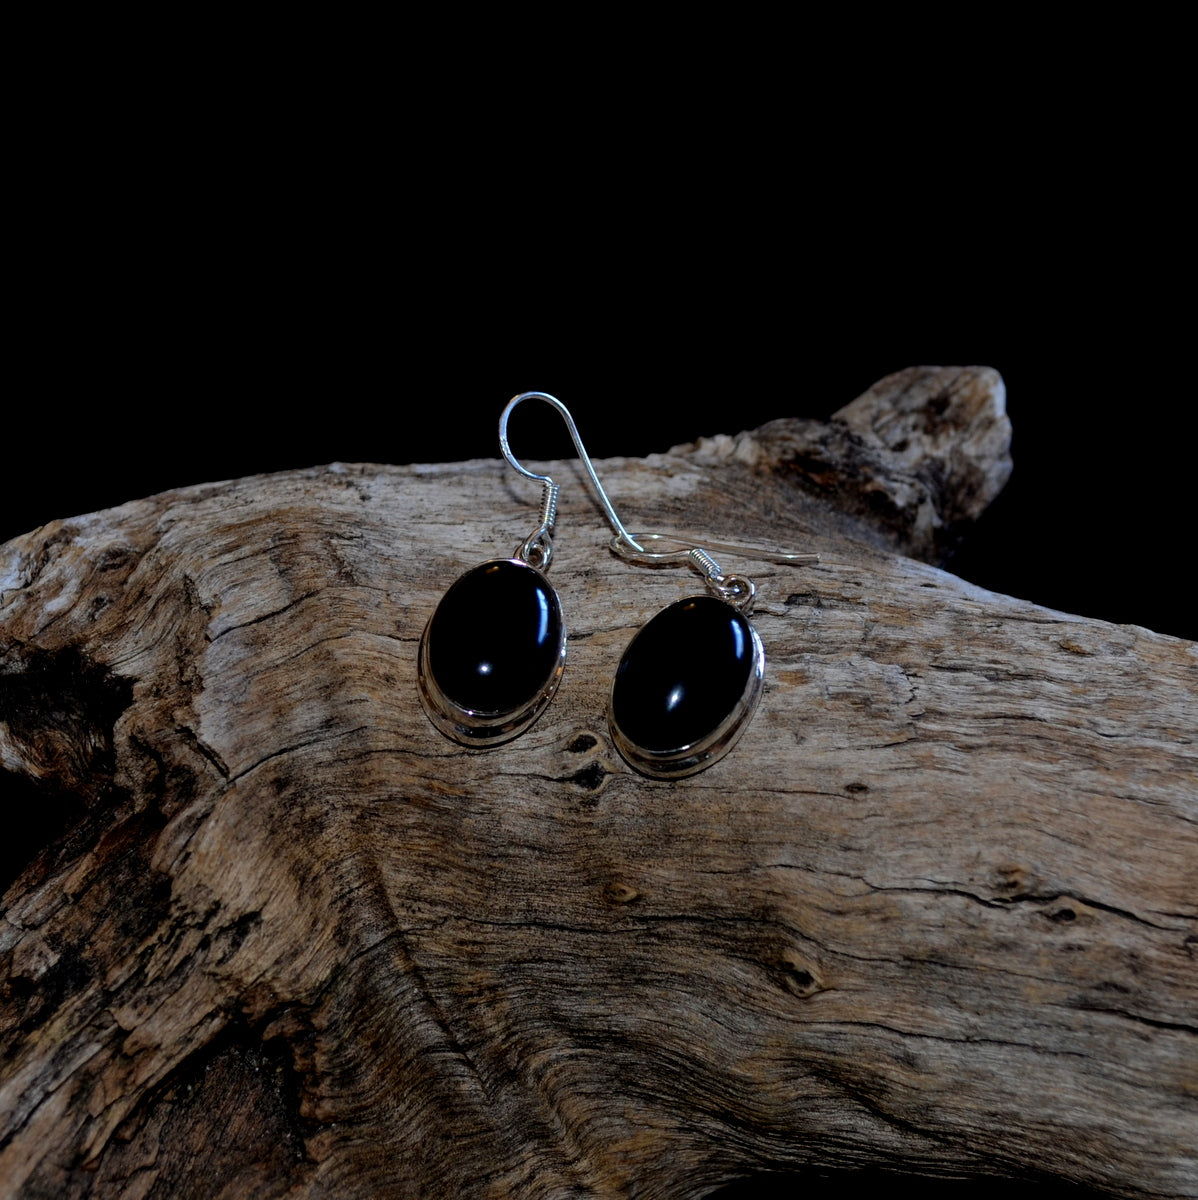 Black Obsidian 925 Sterling Silver Oval Drop Earrings at Illiom Crystals - Afterpay Available